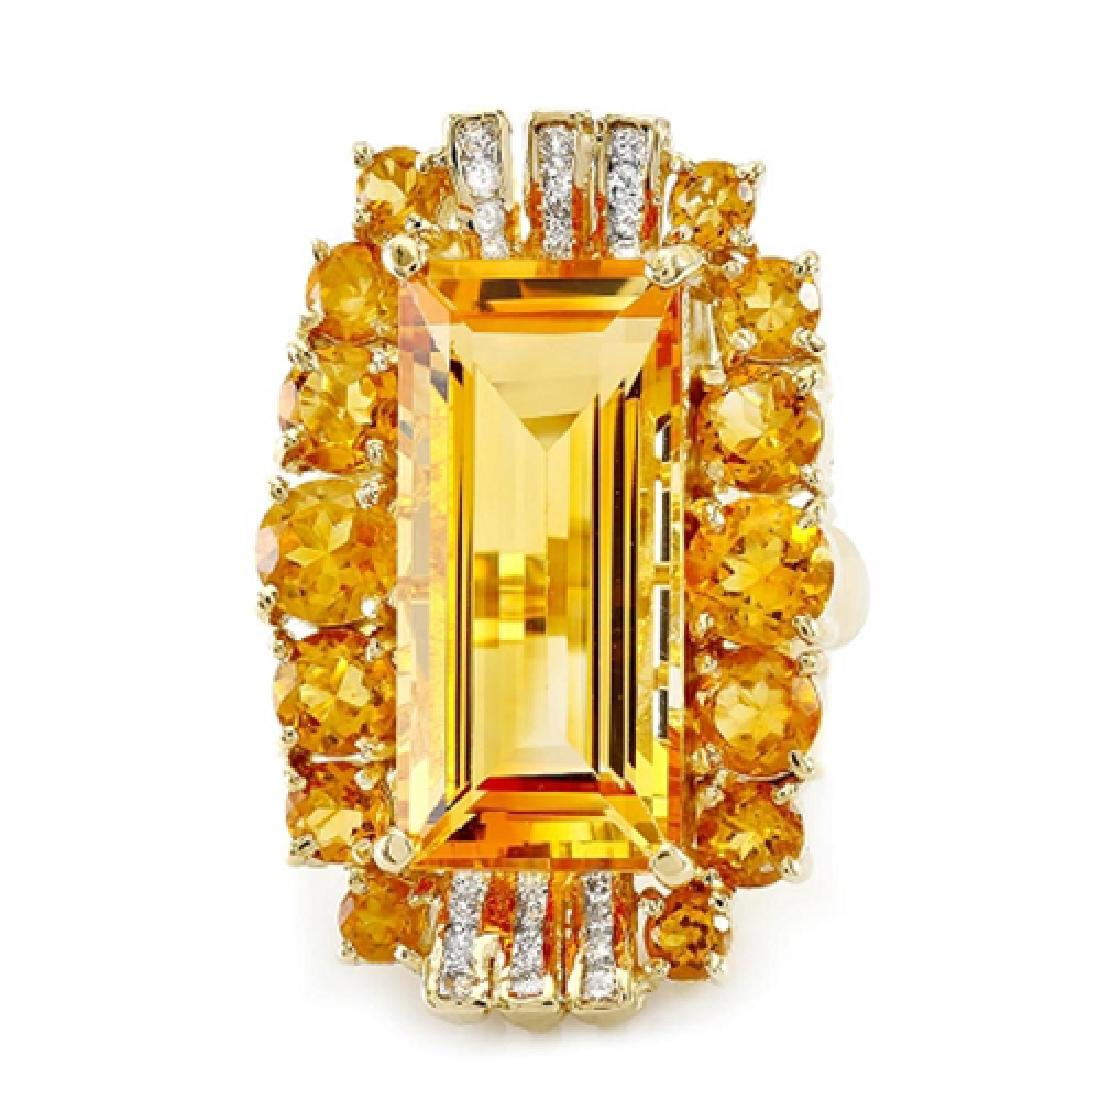 20.55 Carat Natural Citrine 18K Solid Yellow Gold